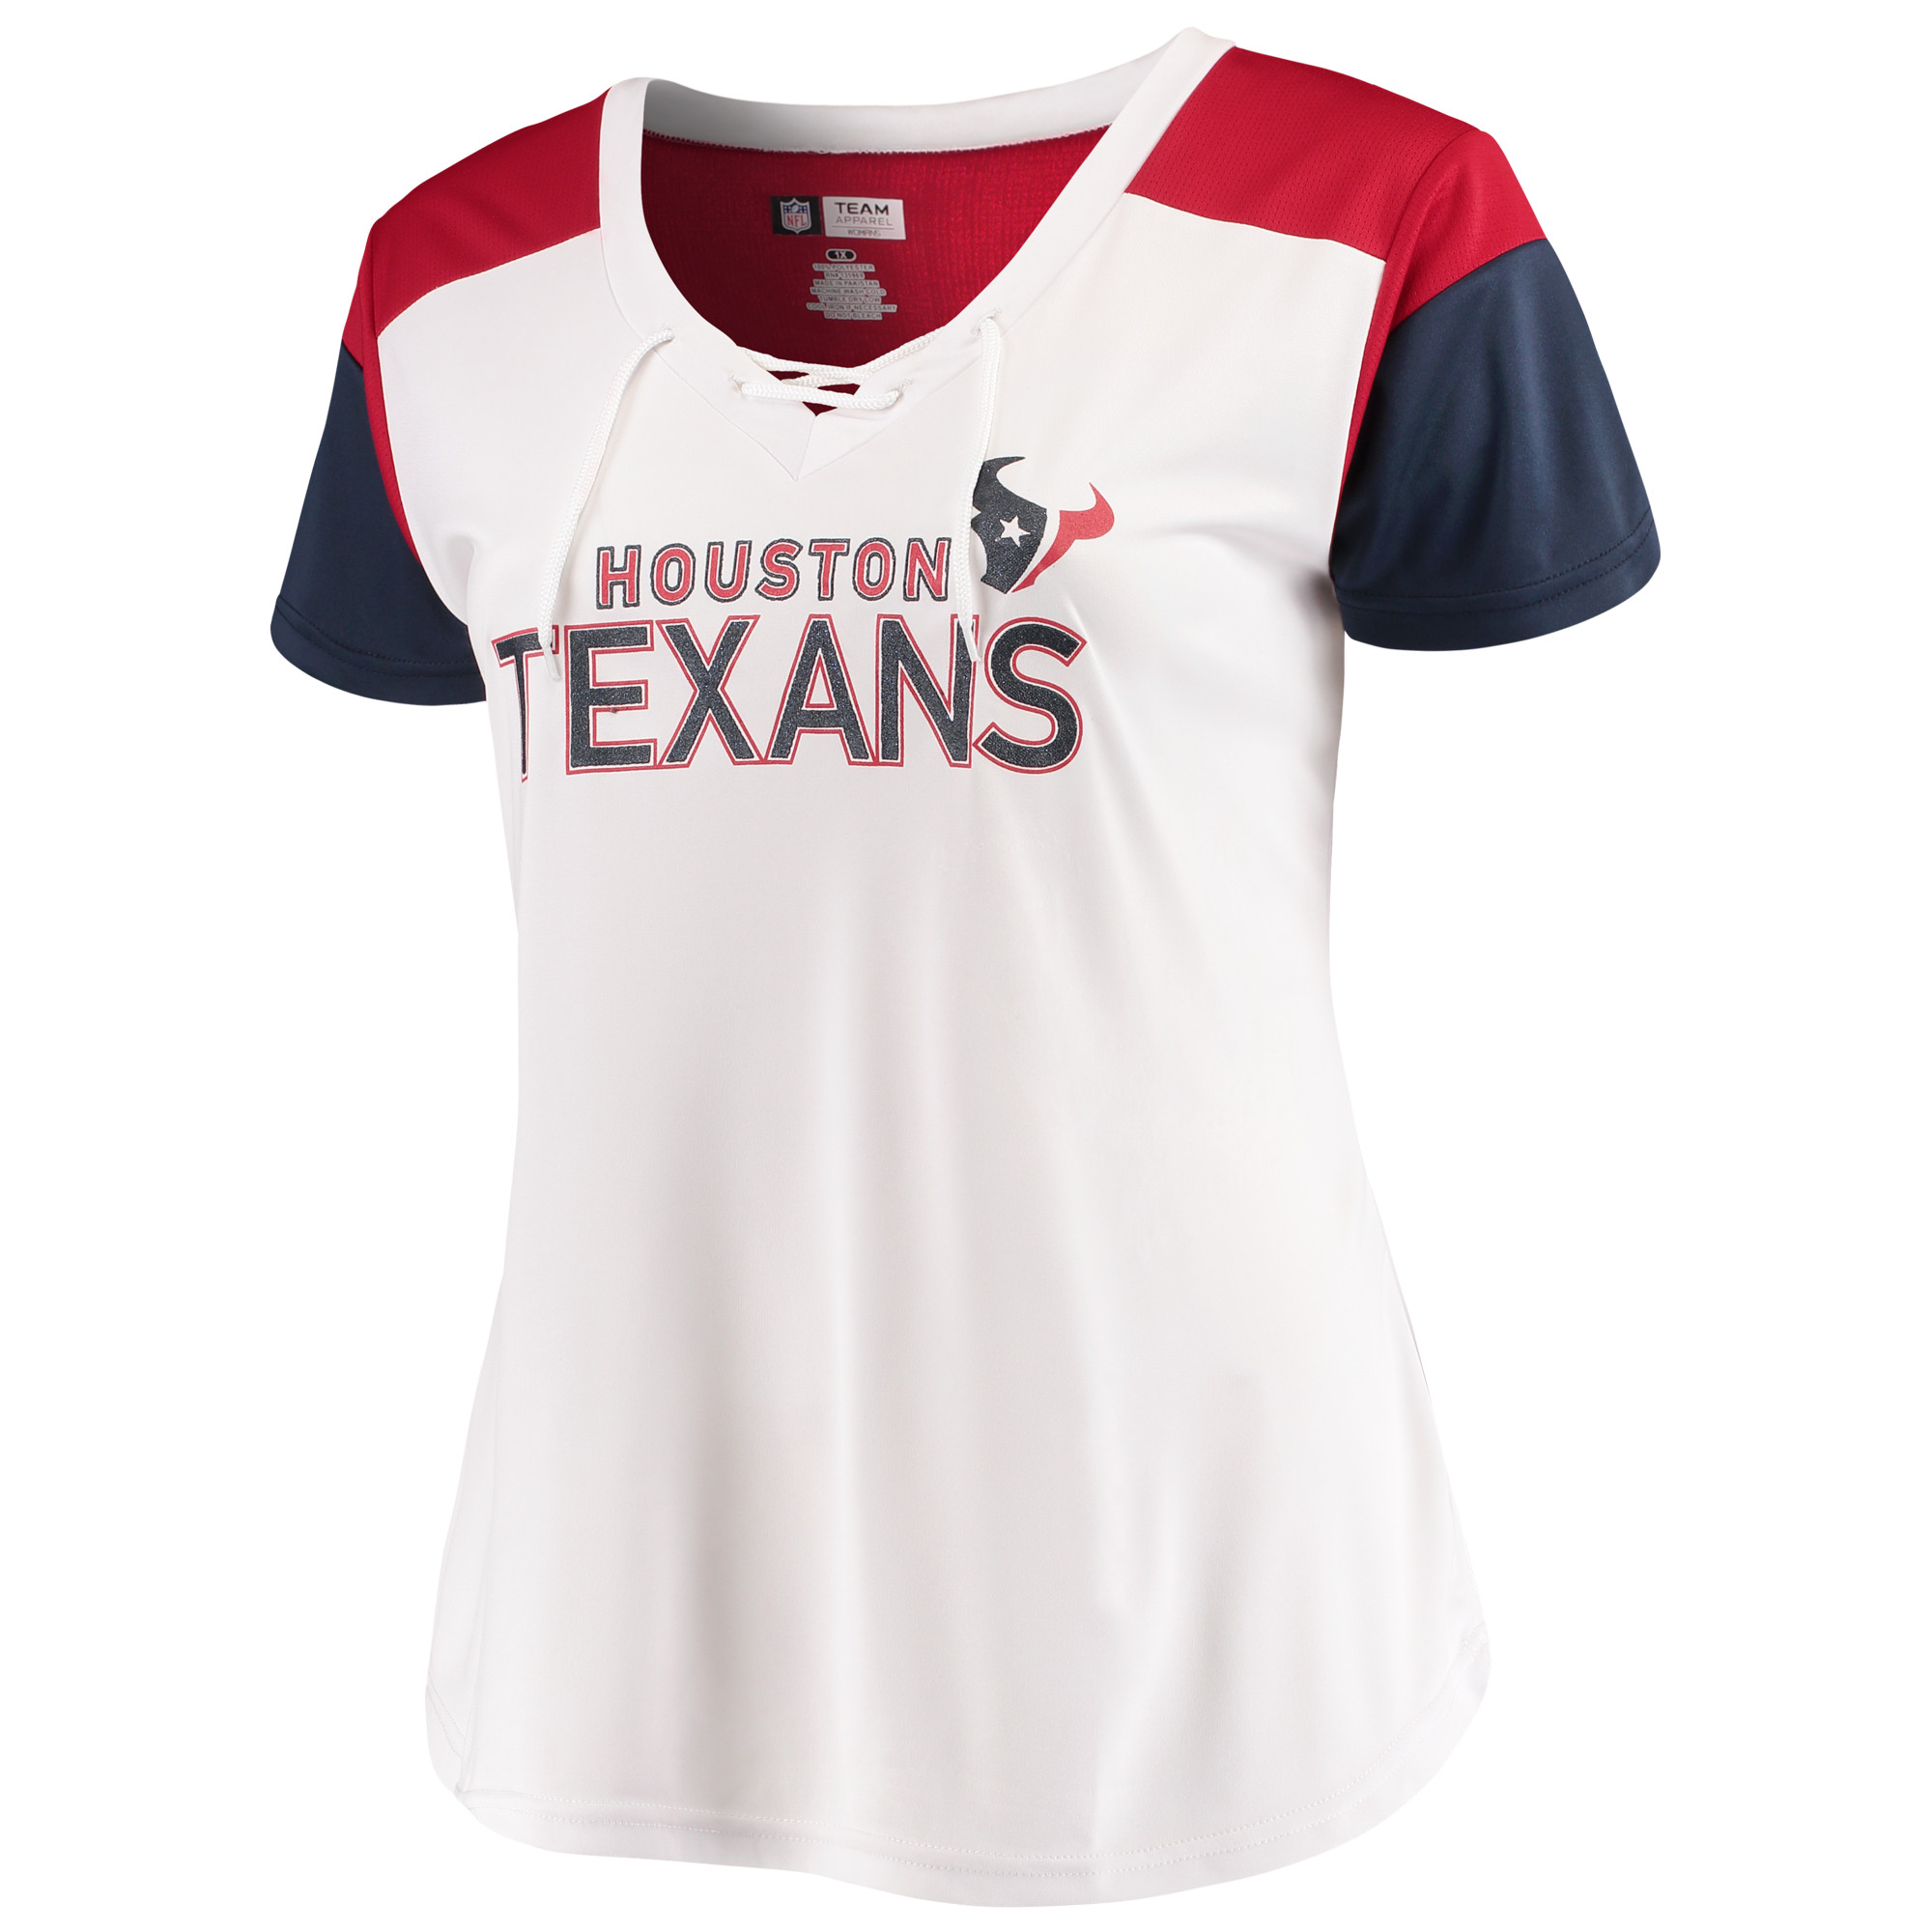 Women's Majestic White/Navy Houston Texans Lace-Up V-Neck T-Shirt